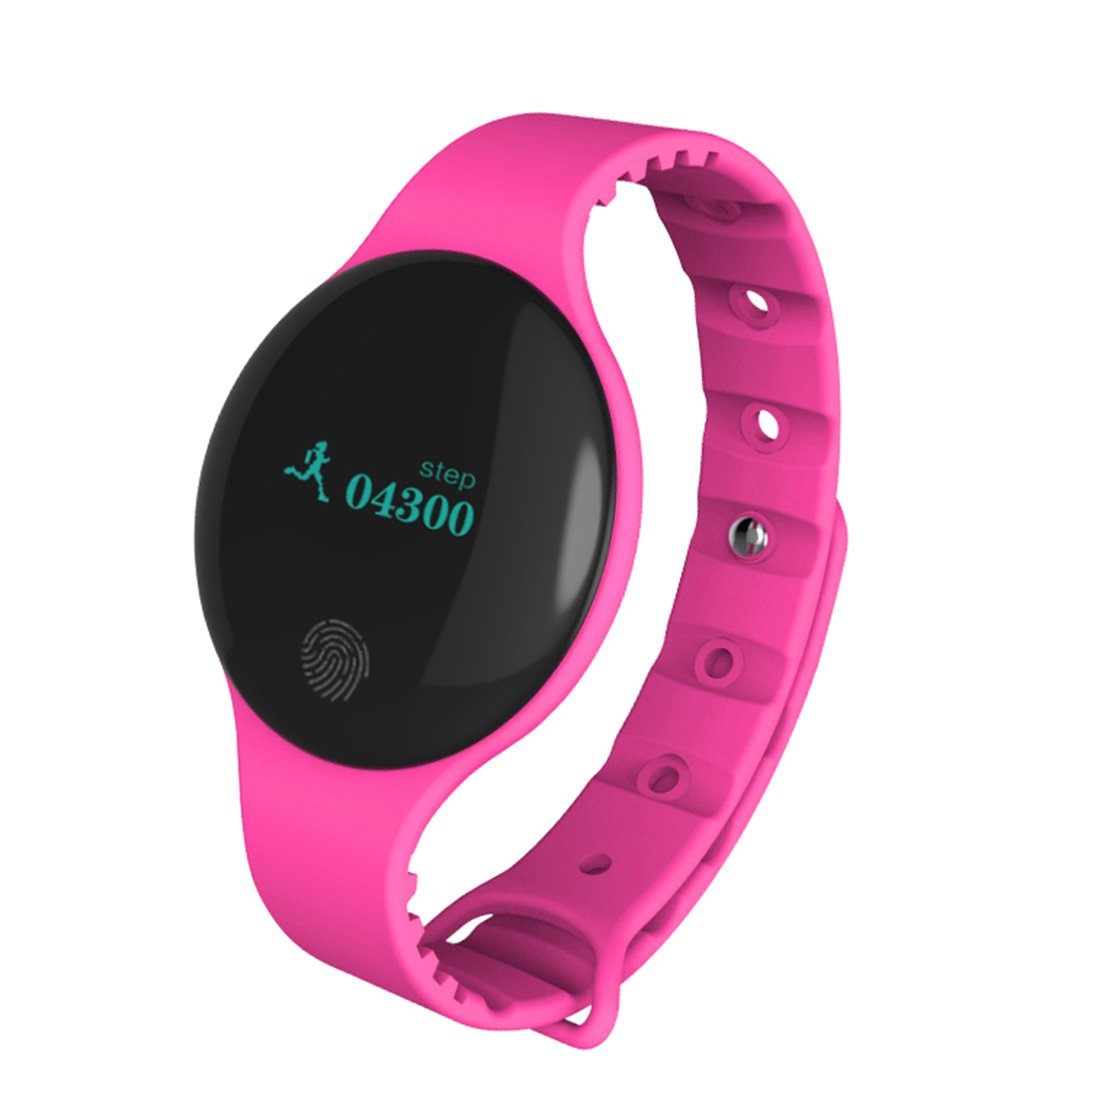 HDWY Smart Bracelet With Color Screen Step Counter Calorie Sleep Monitor Distance Sport Watch Walking Running App For Woman And Man (Buy One Get One Free) (Color : Red)